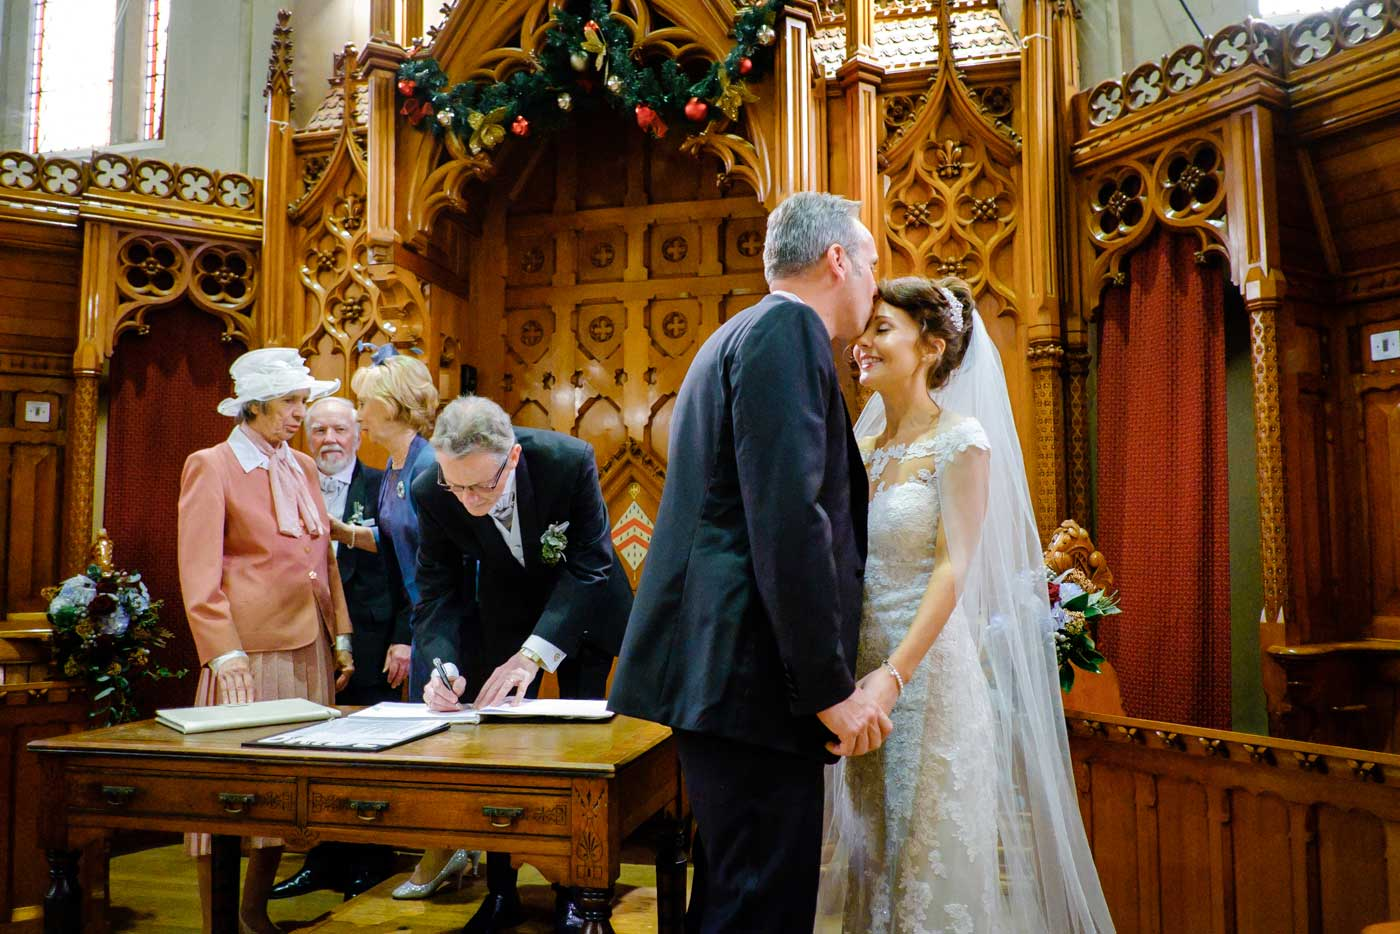 Groom kissing bride on forehead during signing the registers at The Callow Great Hall in Stanbrook Abbey by Stanbrook Abbey wedding photographer Clive Blair Photography